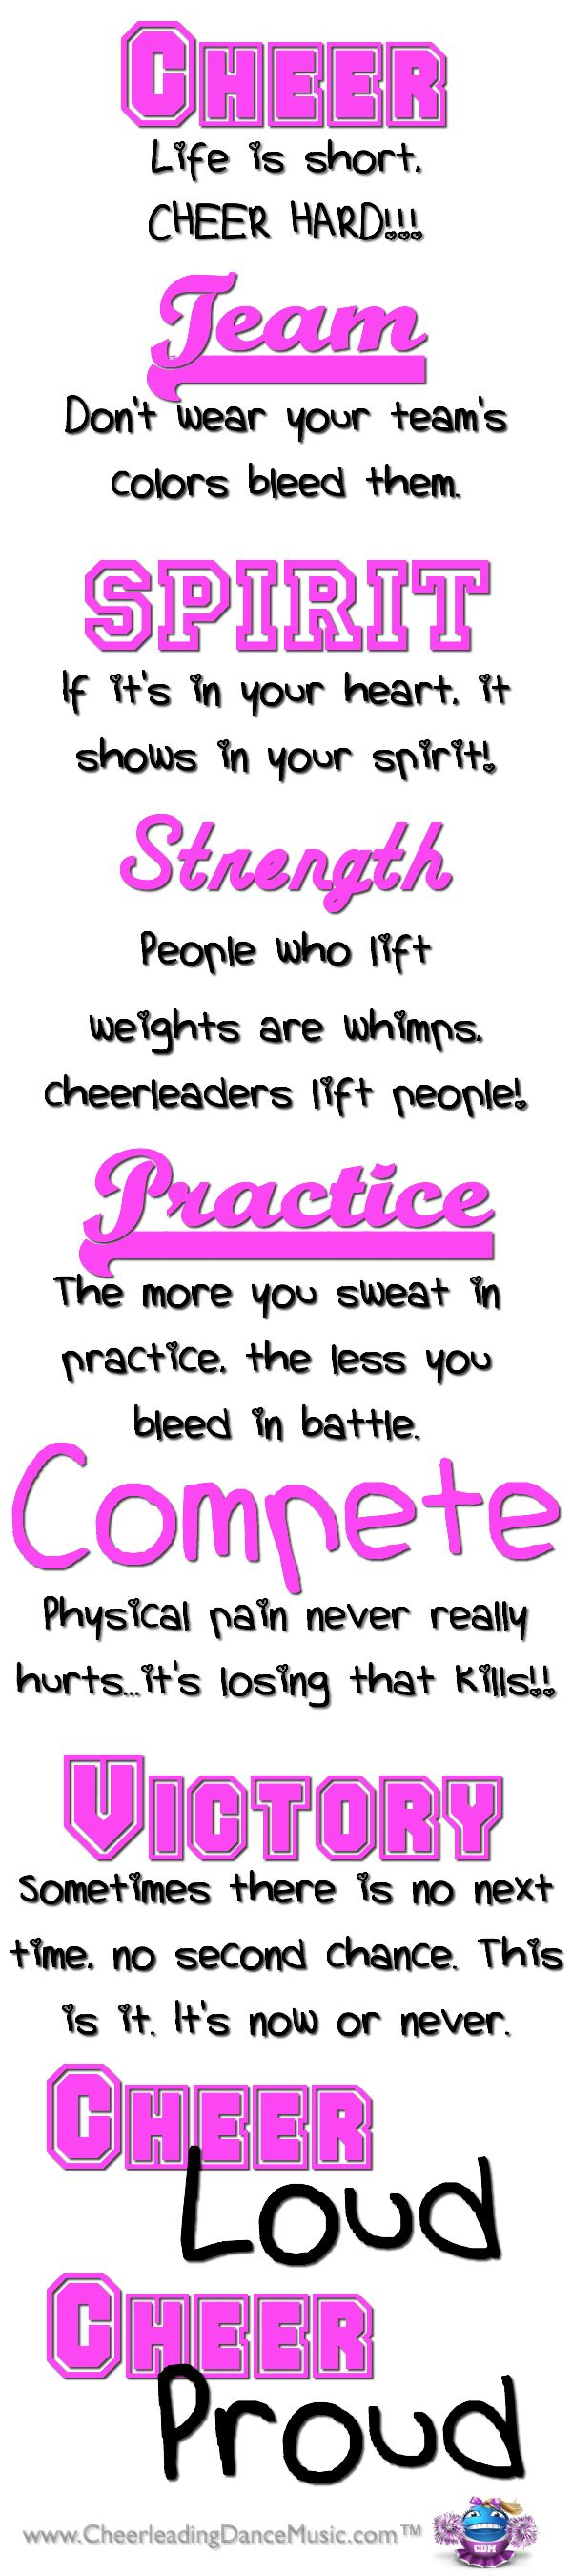 Cheerleading <3 Cheer Loud ~ Cheer Proud!